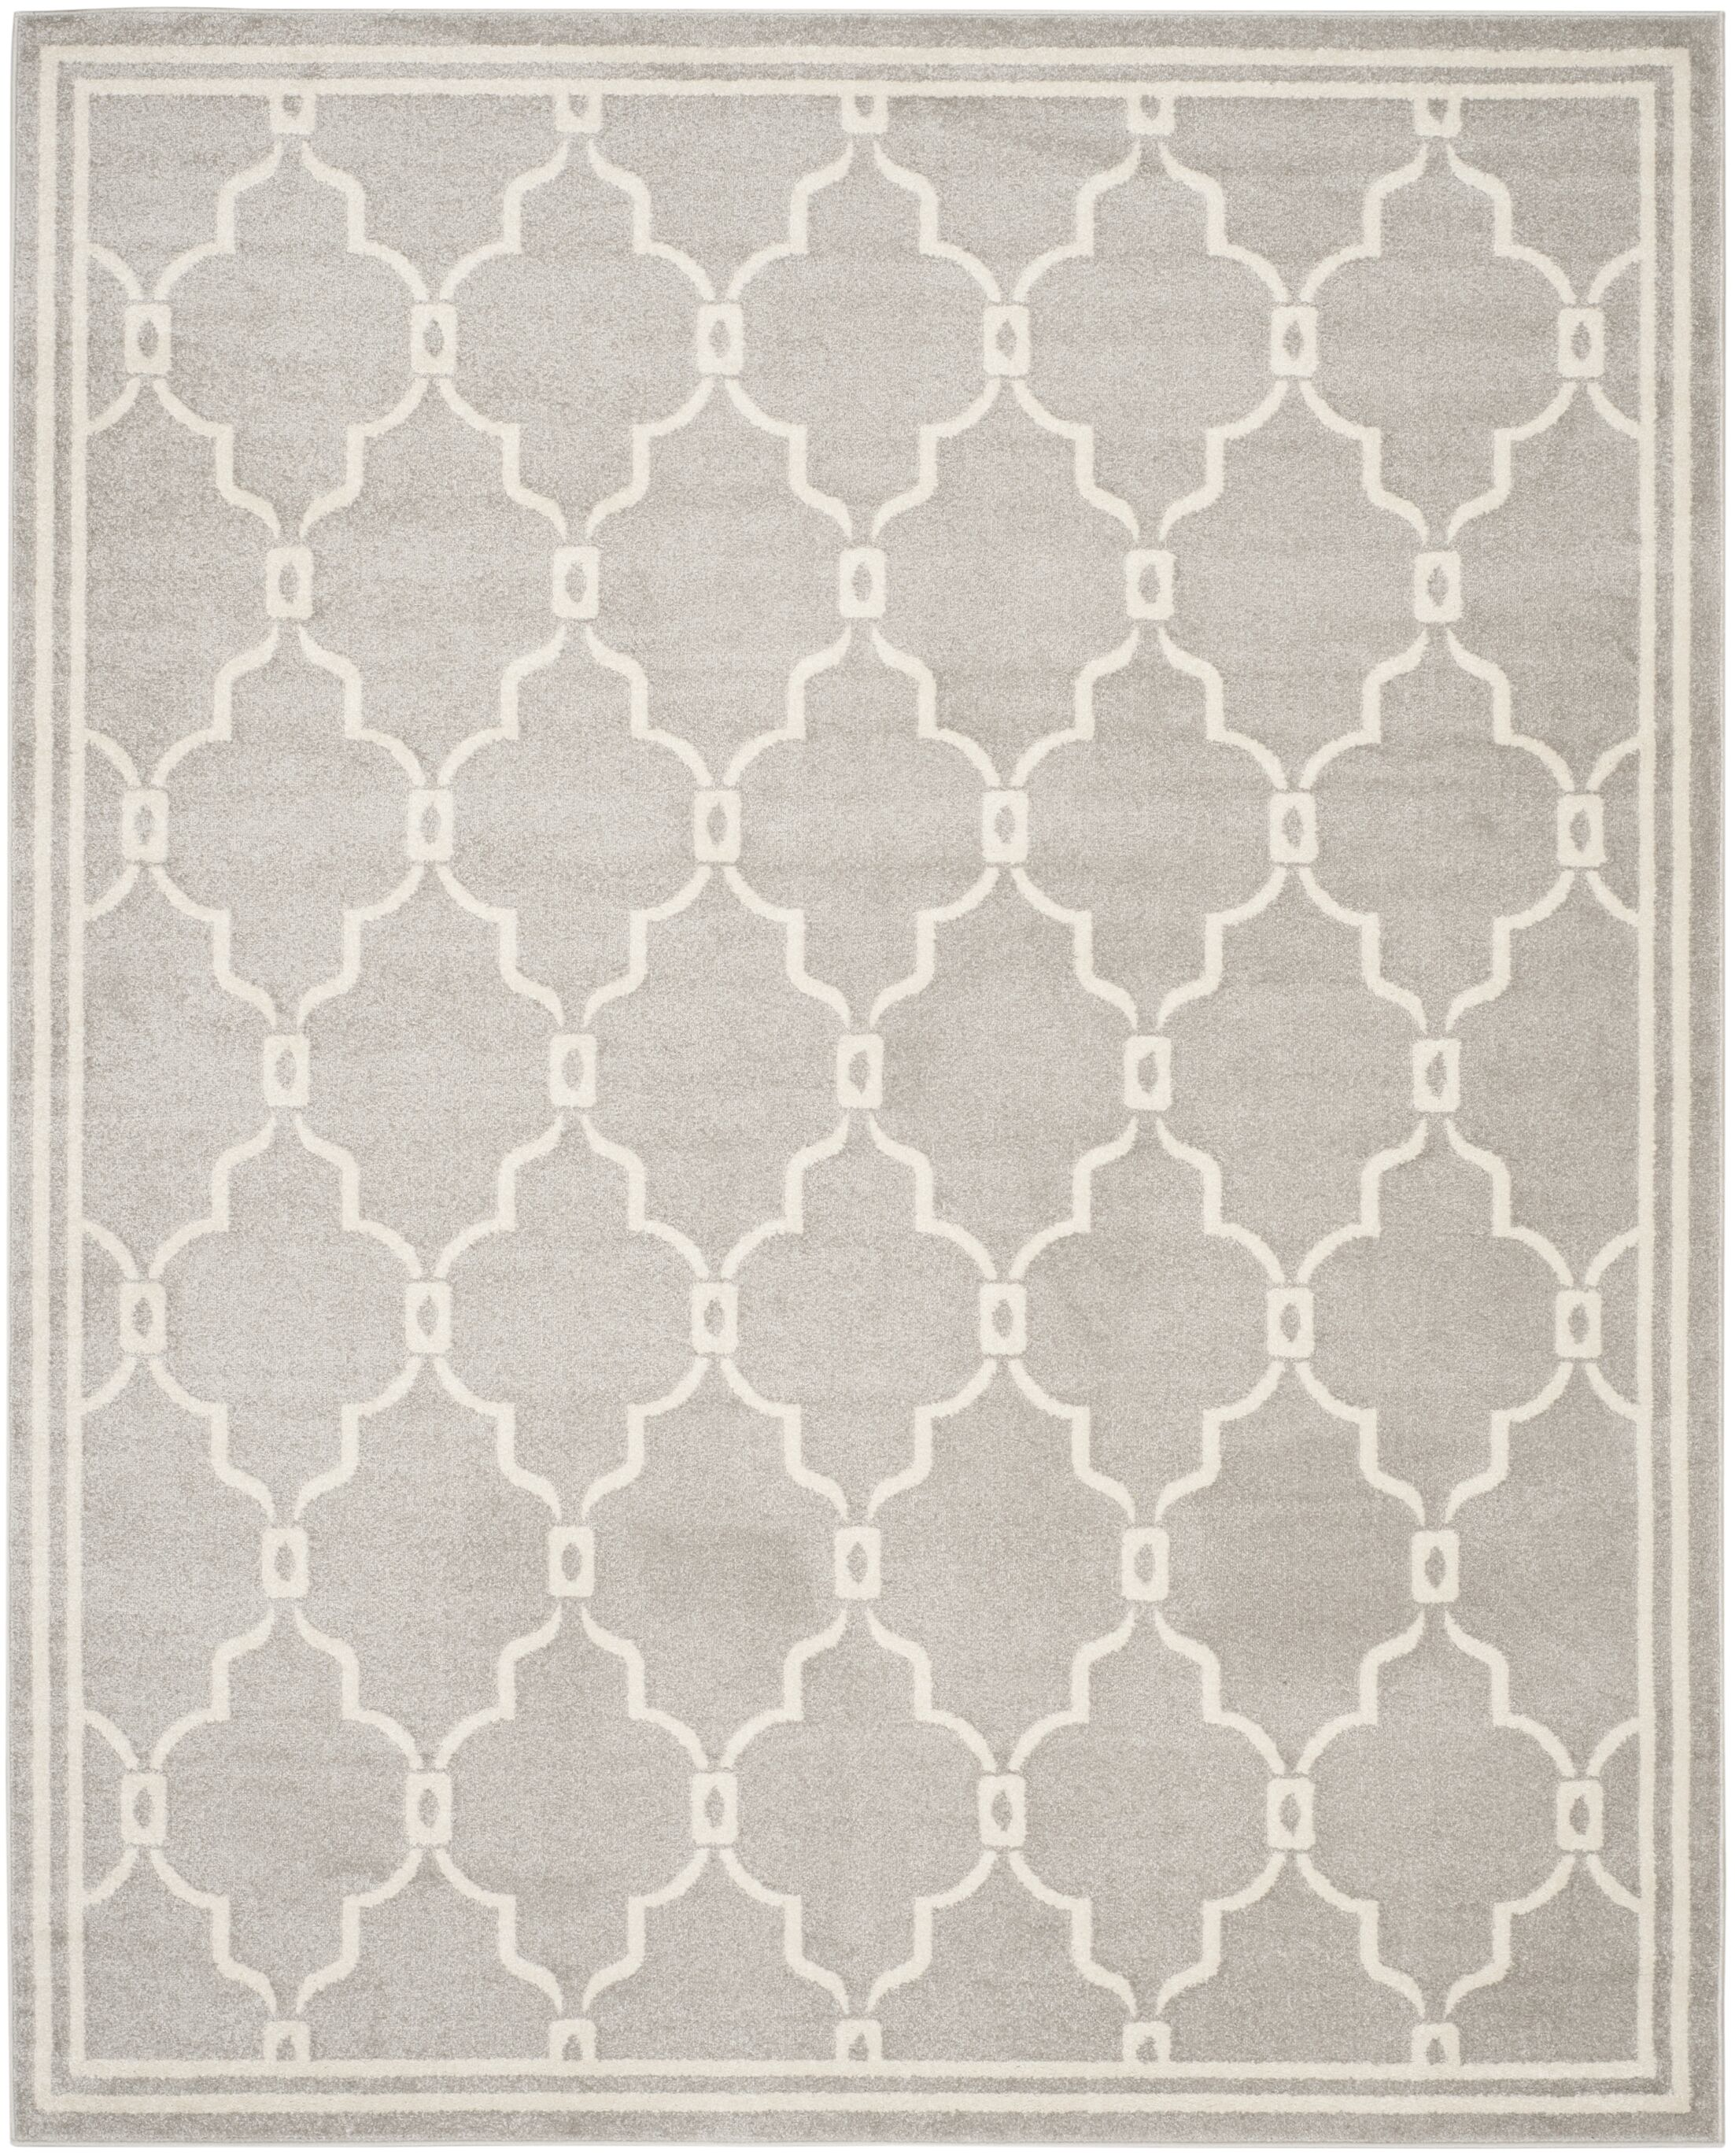 Wason Light Gray/Ivory Indoor/Outdoor Area Rug Rug Size: Rectangle 10' x 14'